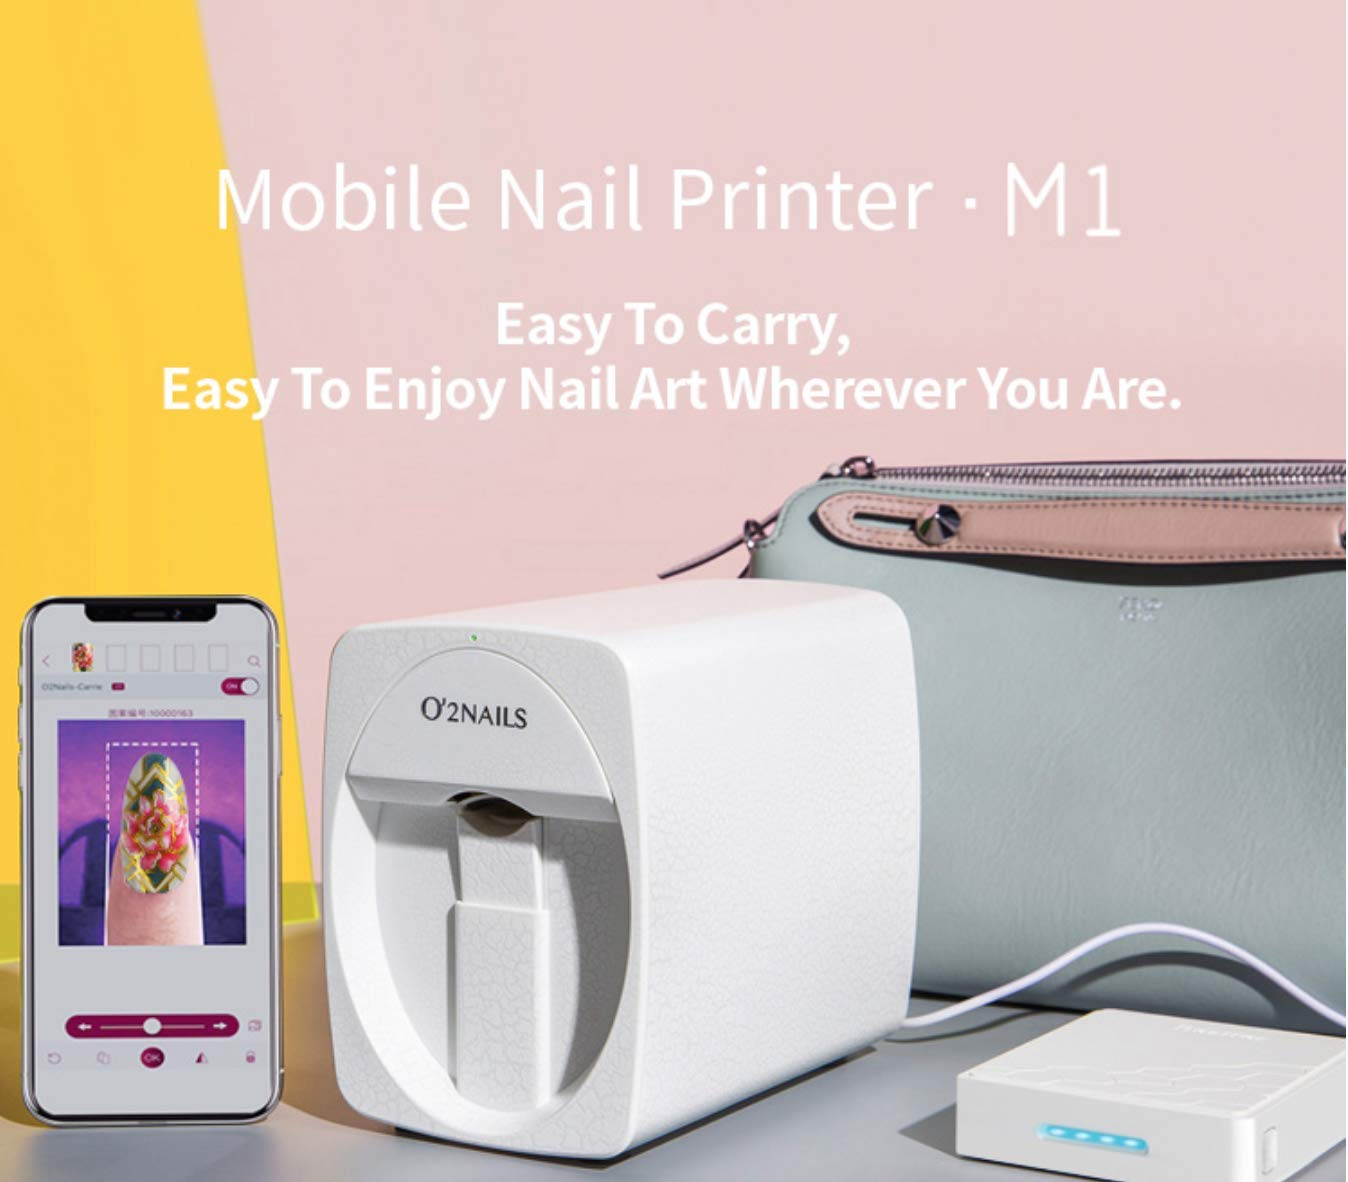 Amazon.com: Máquina para pintar uñas O2 Nails M1 3D ...